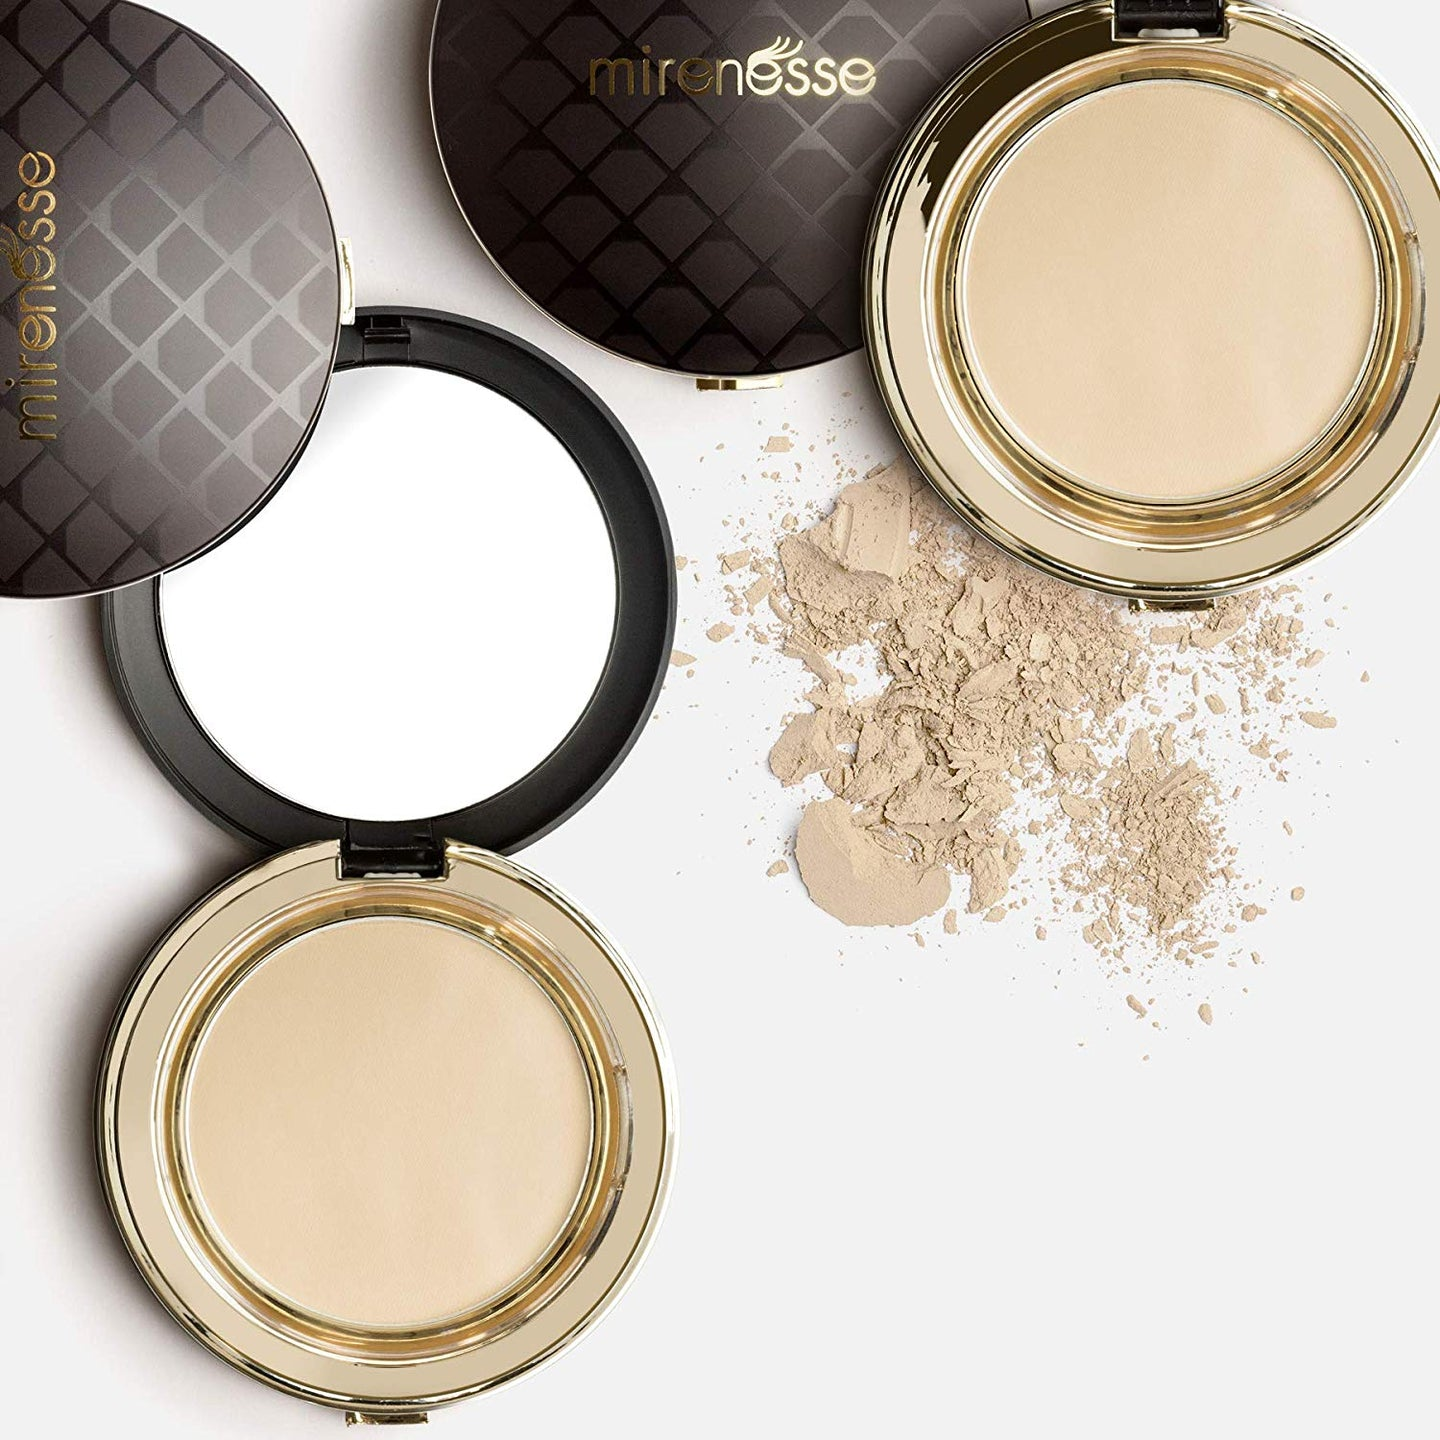 Shop Vienna 4 in 1 Skin Clone Foundation Mineral Face Powder by Mirenesse - Let's make it a trend #explorebeautiful face foundations